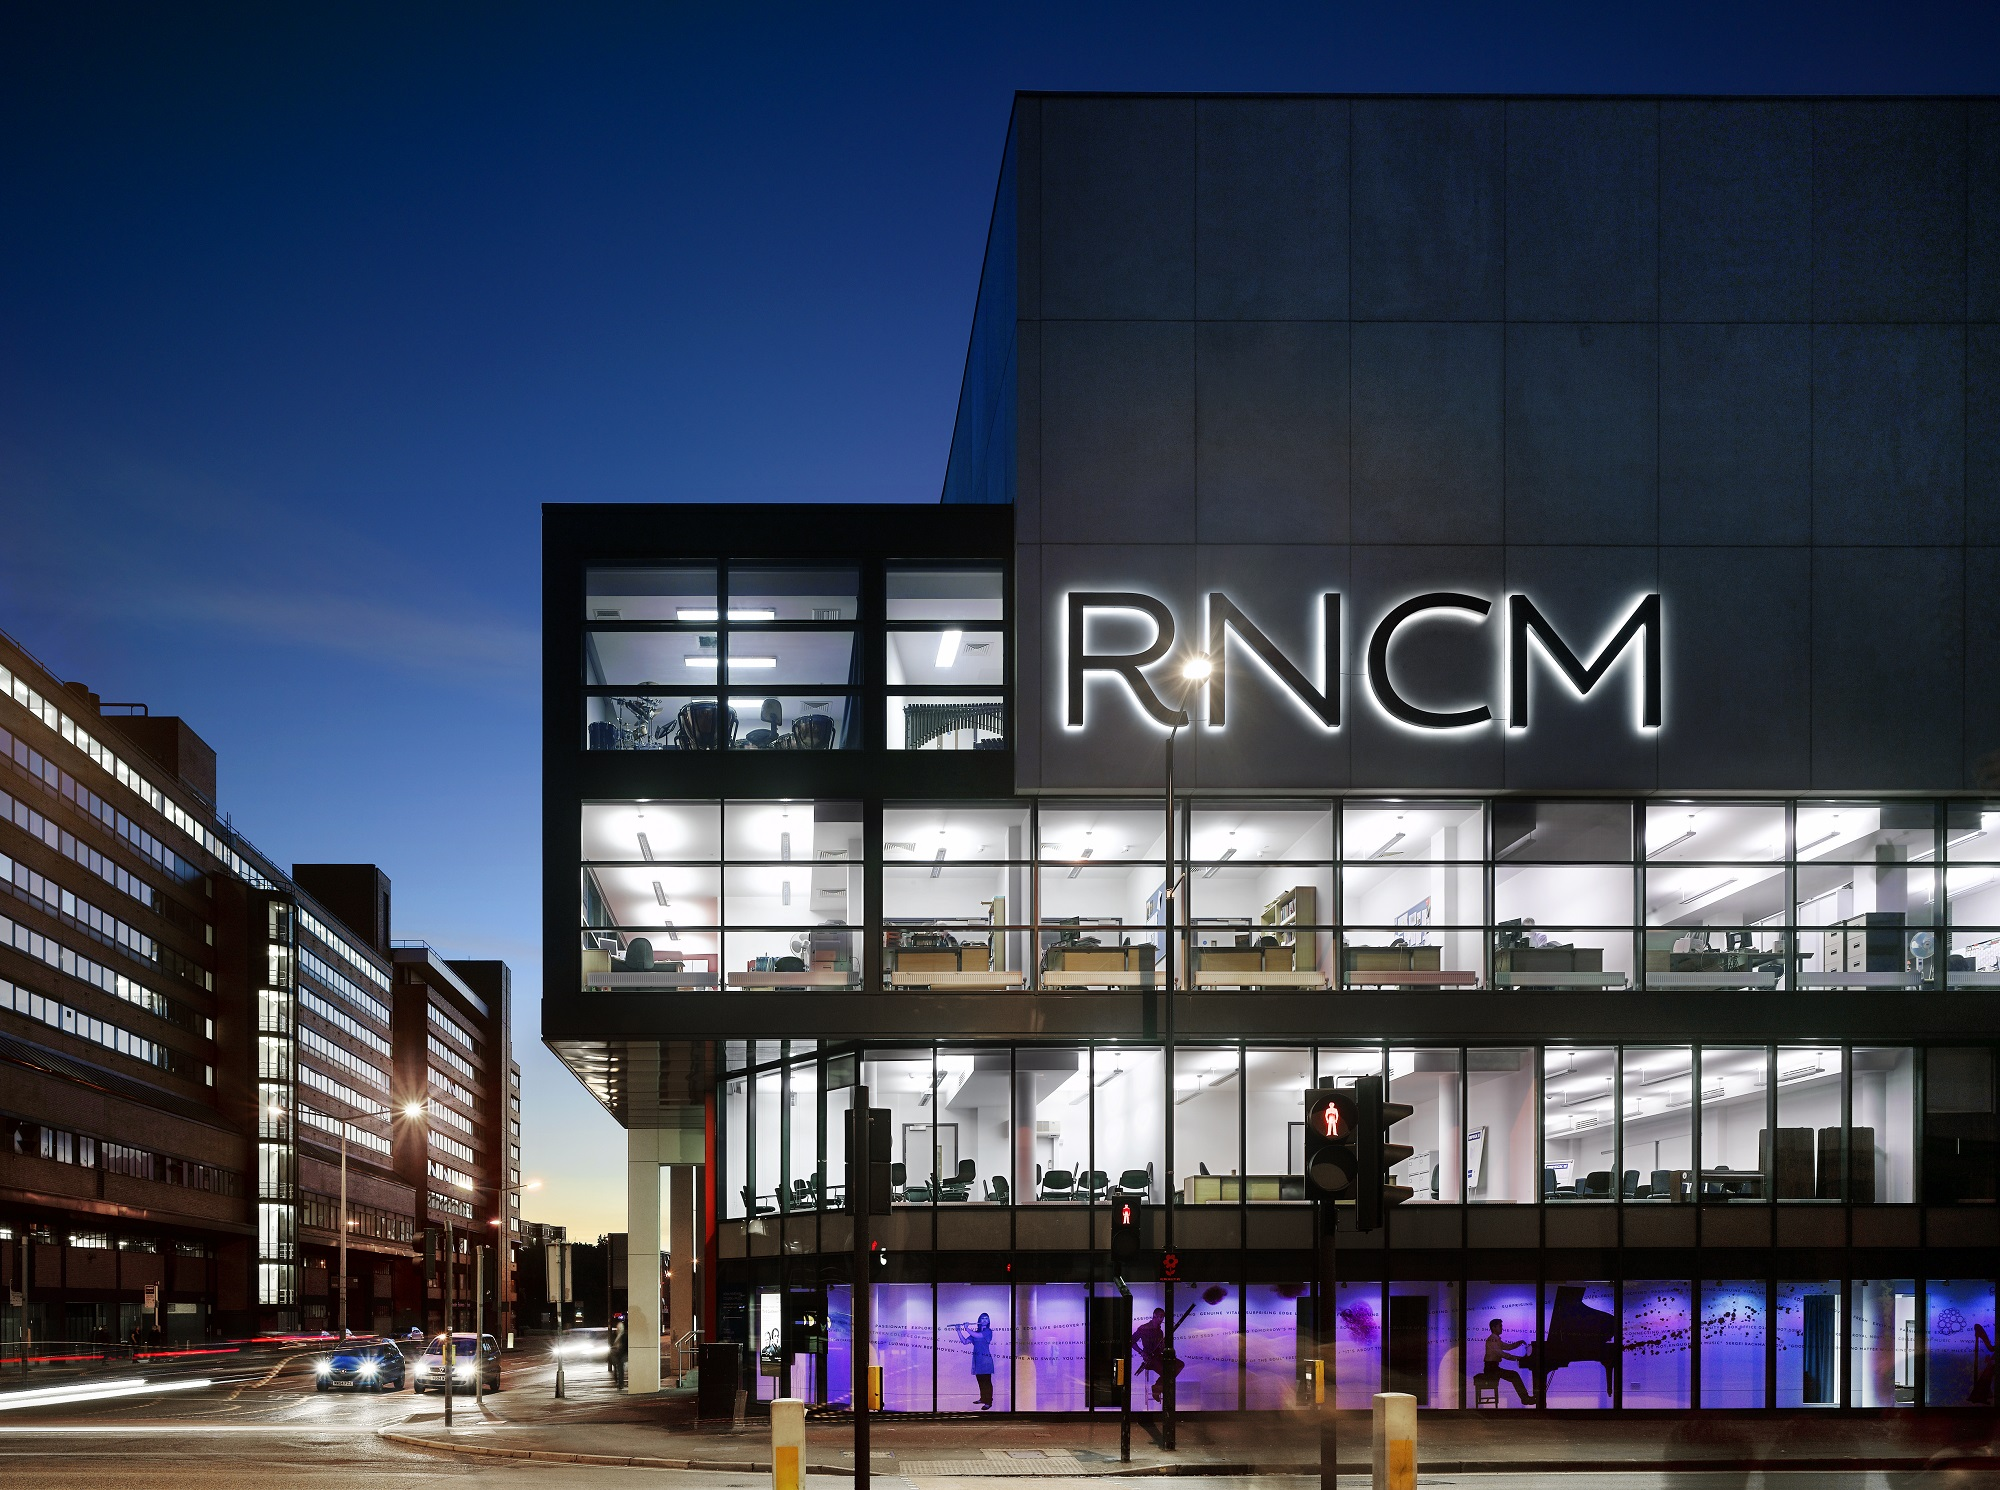 External night time shot of The Royal Northern College of Music